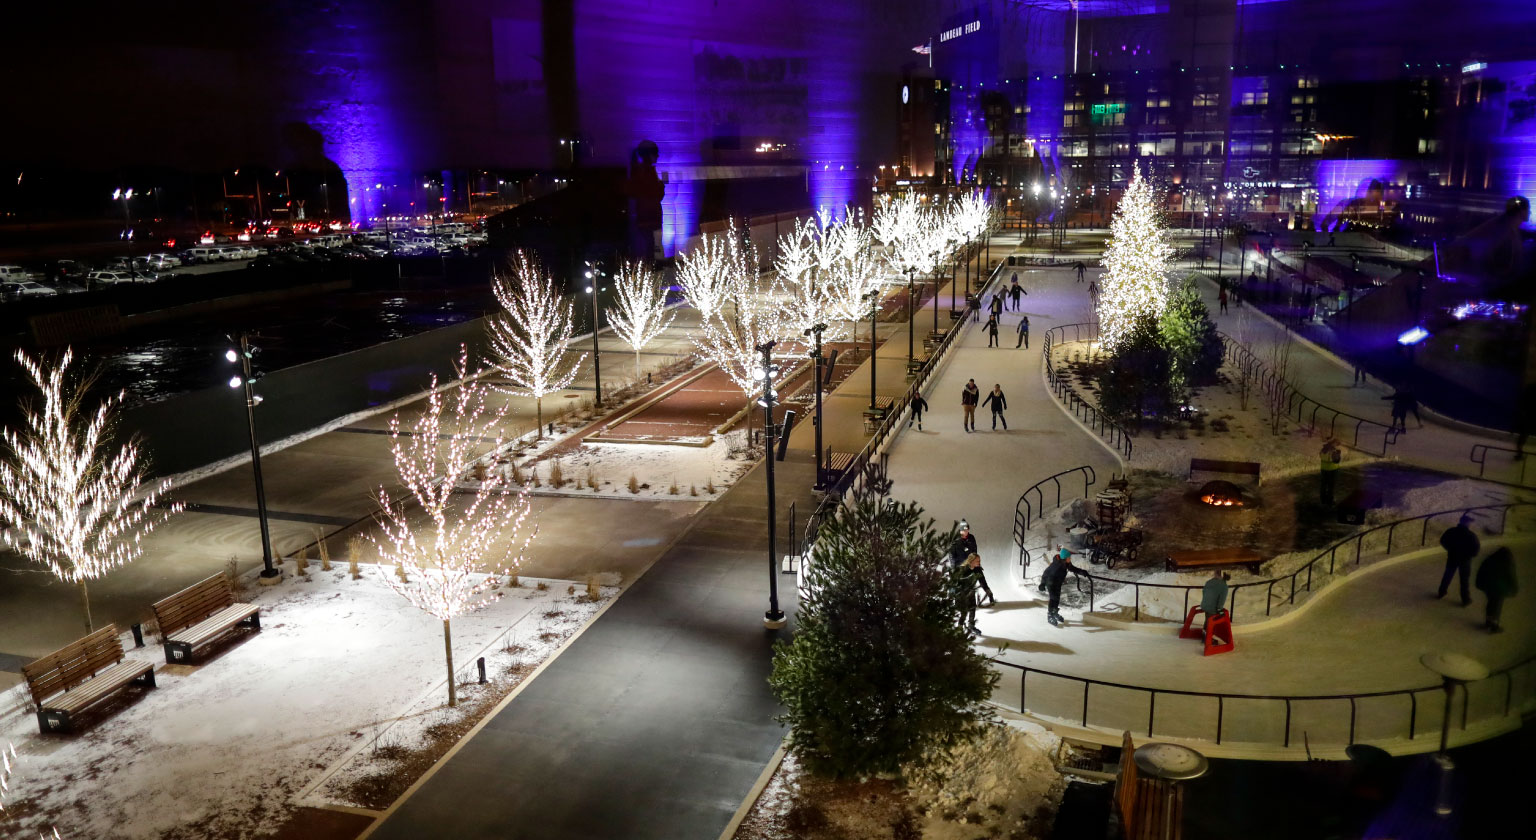 View of Ice Skating Rink at Titletown. Decorated white trees around the perimeter.